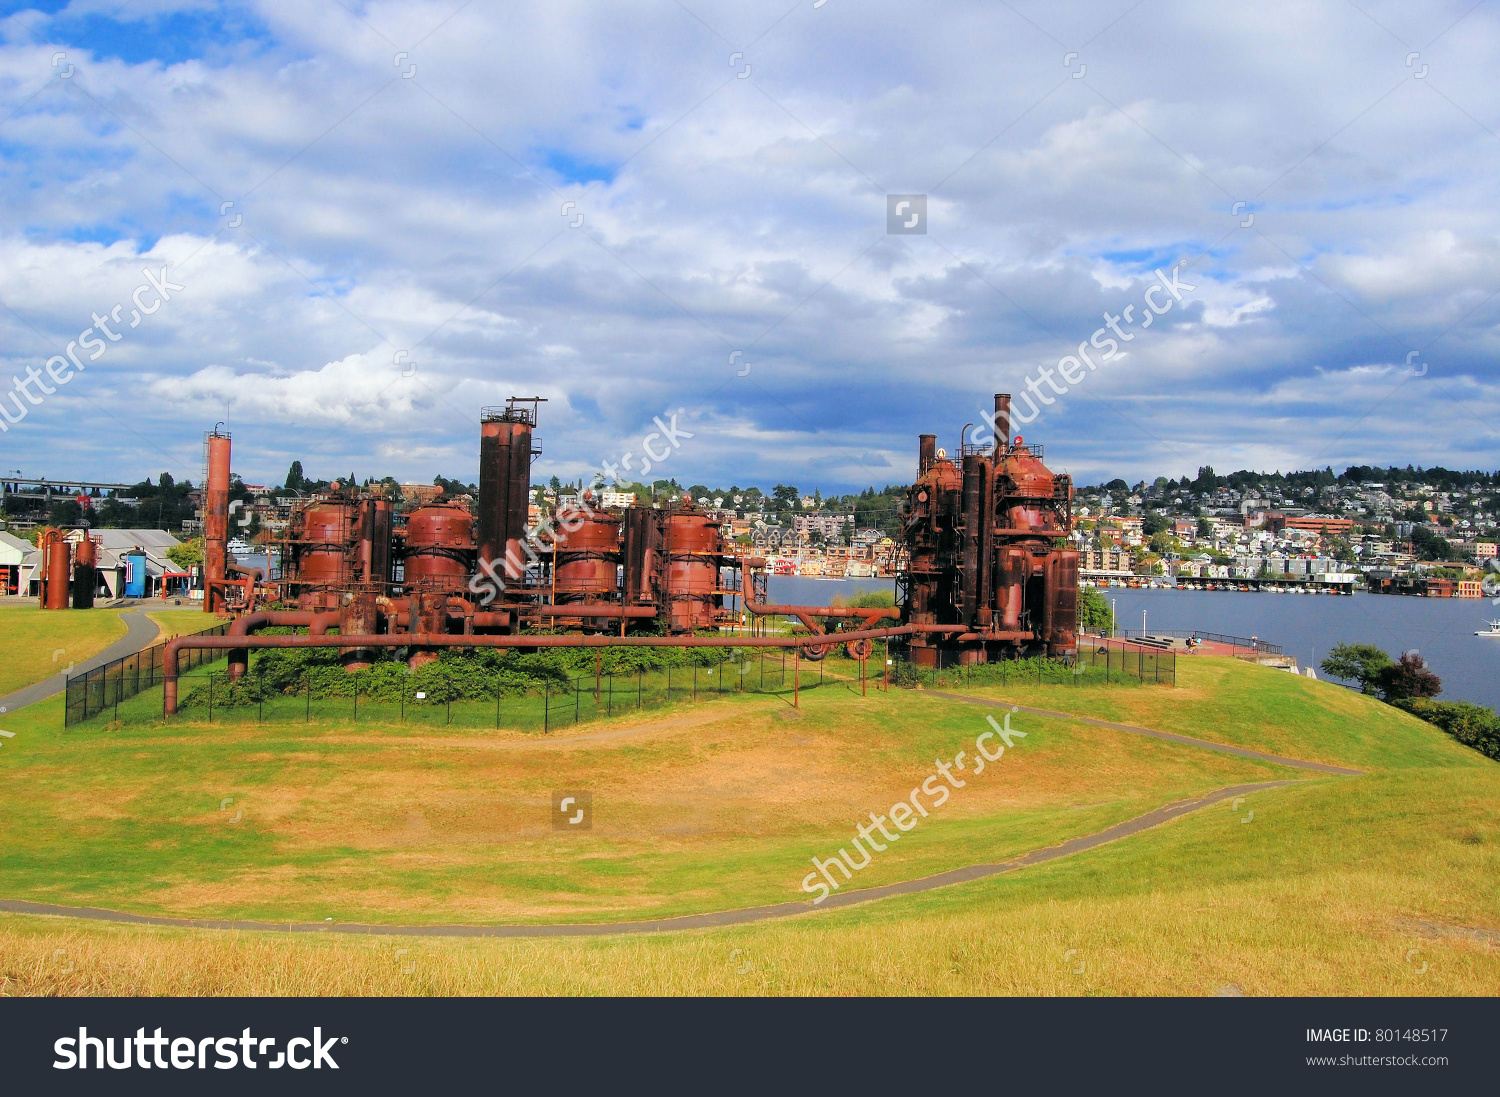 Gas Works Park Cloudy Day Seattle Stock Photo 80148517.